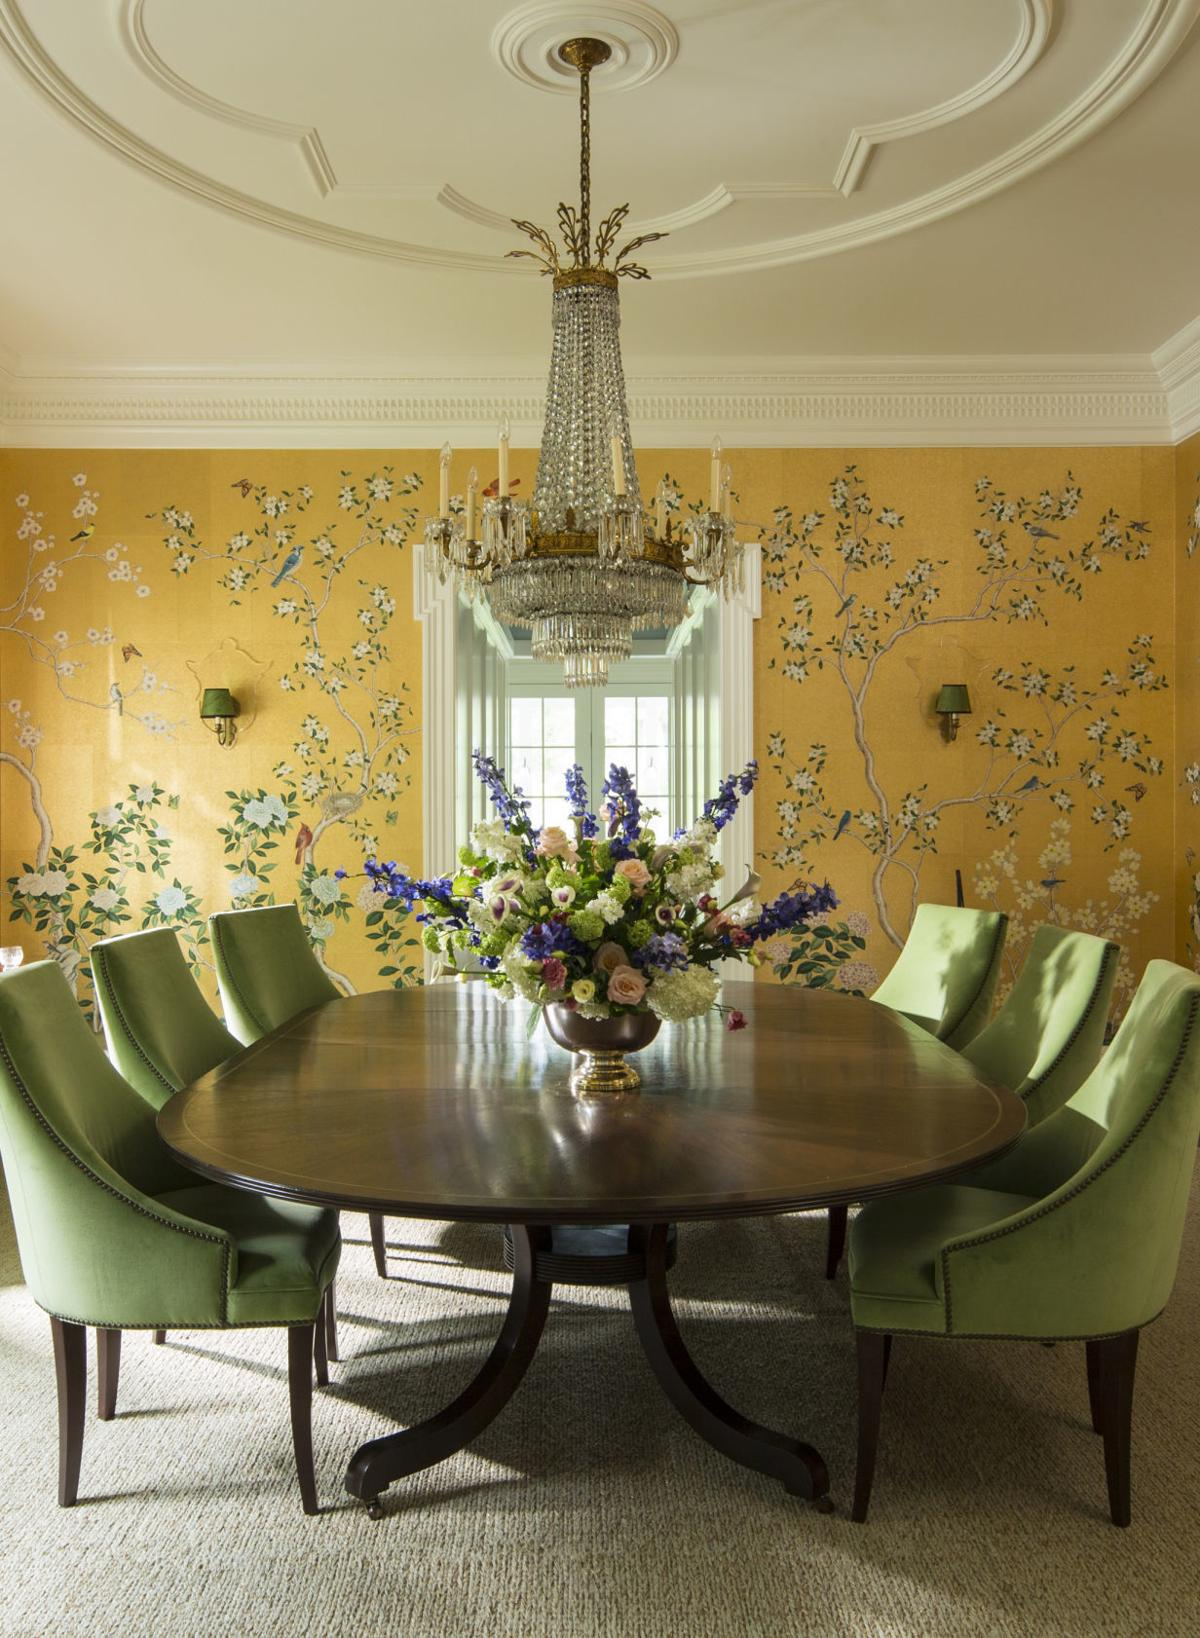 Scenic Wallpaper Murals Now More Accessible Than Ever